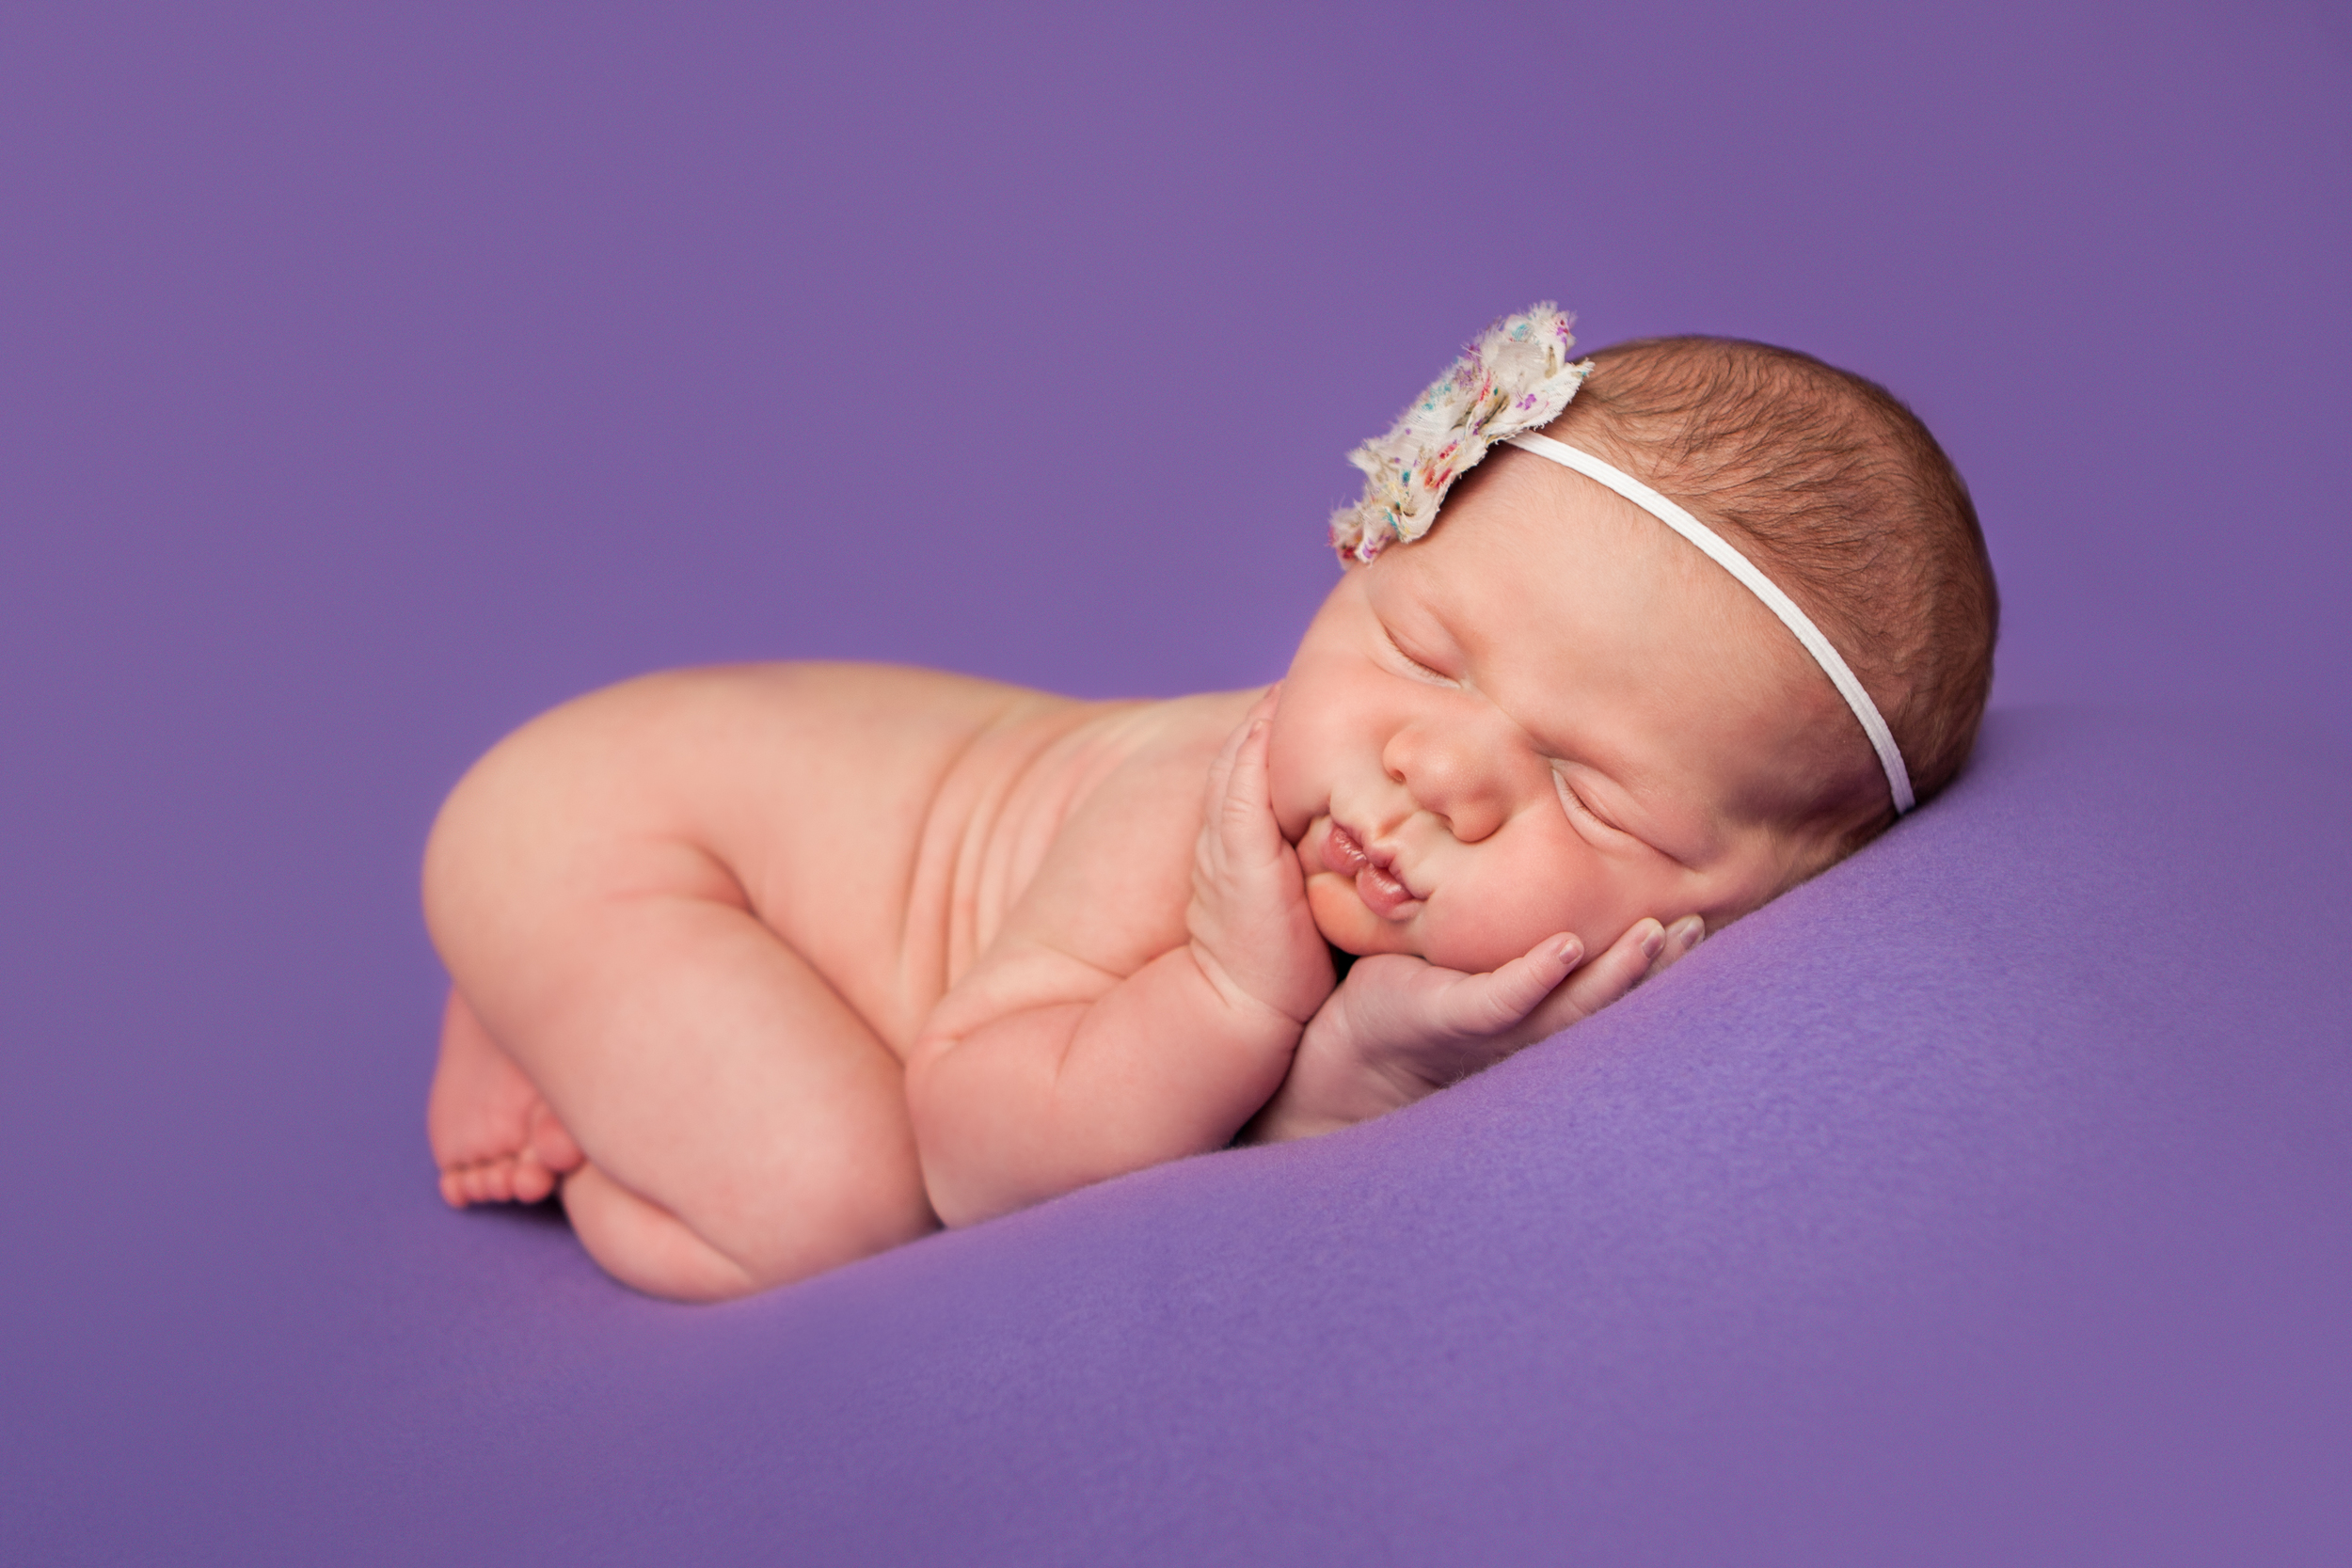 Newborn baby girl with shabby chic white flower headband, hands on cheeks   bean bag pose on purple fabric backdrop, Westchester County, New York Newborn Photographer, Amanda Noelle Photography.